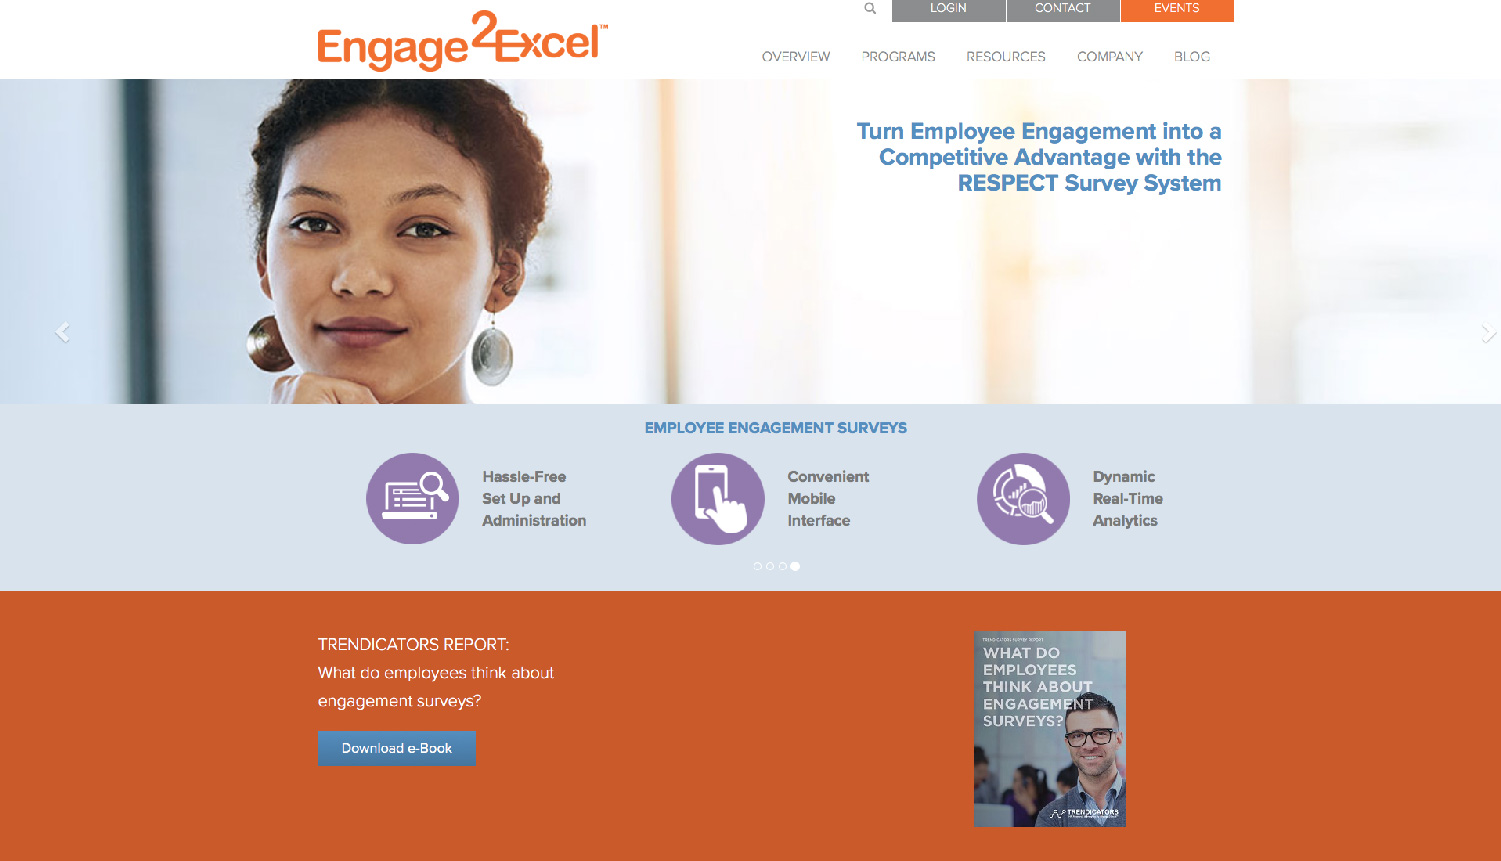 Engage2Excel